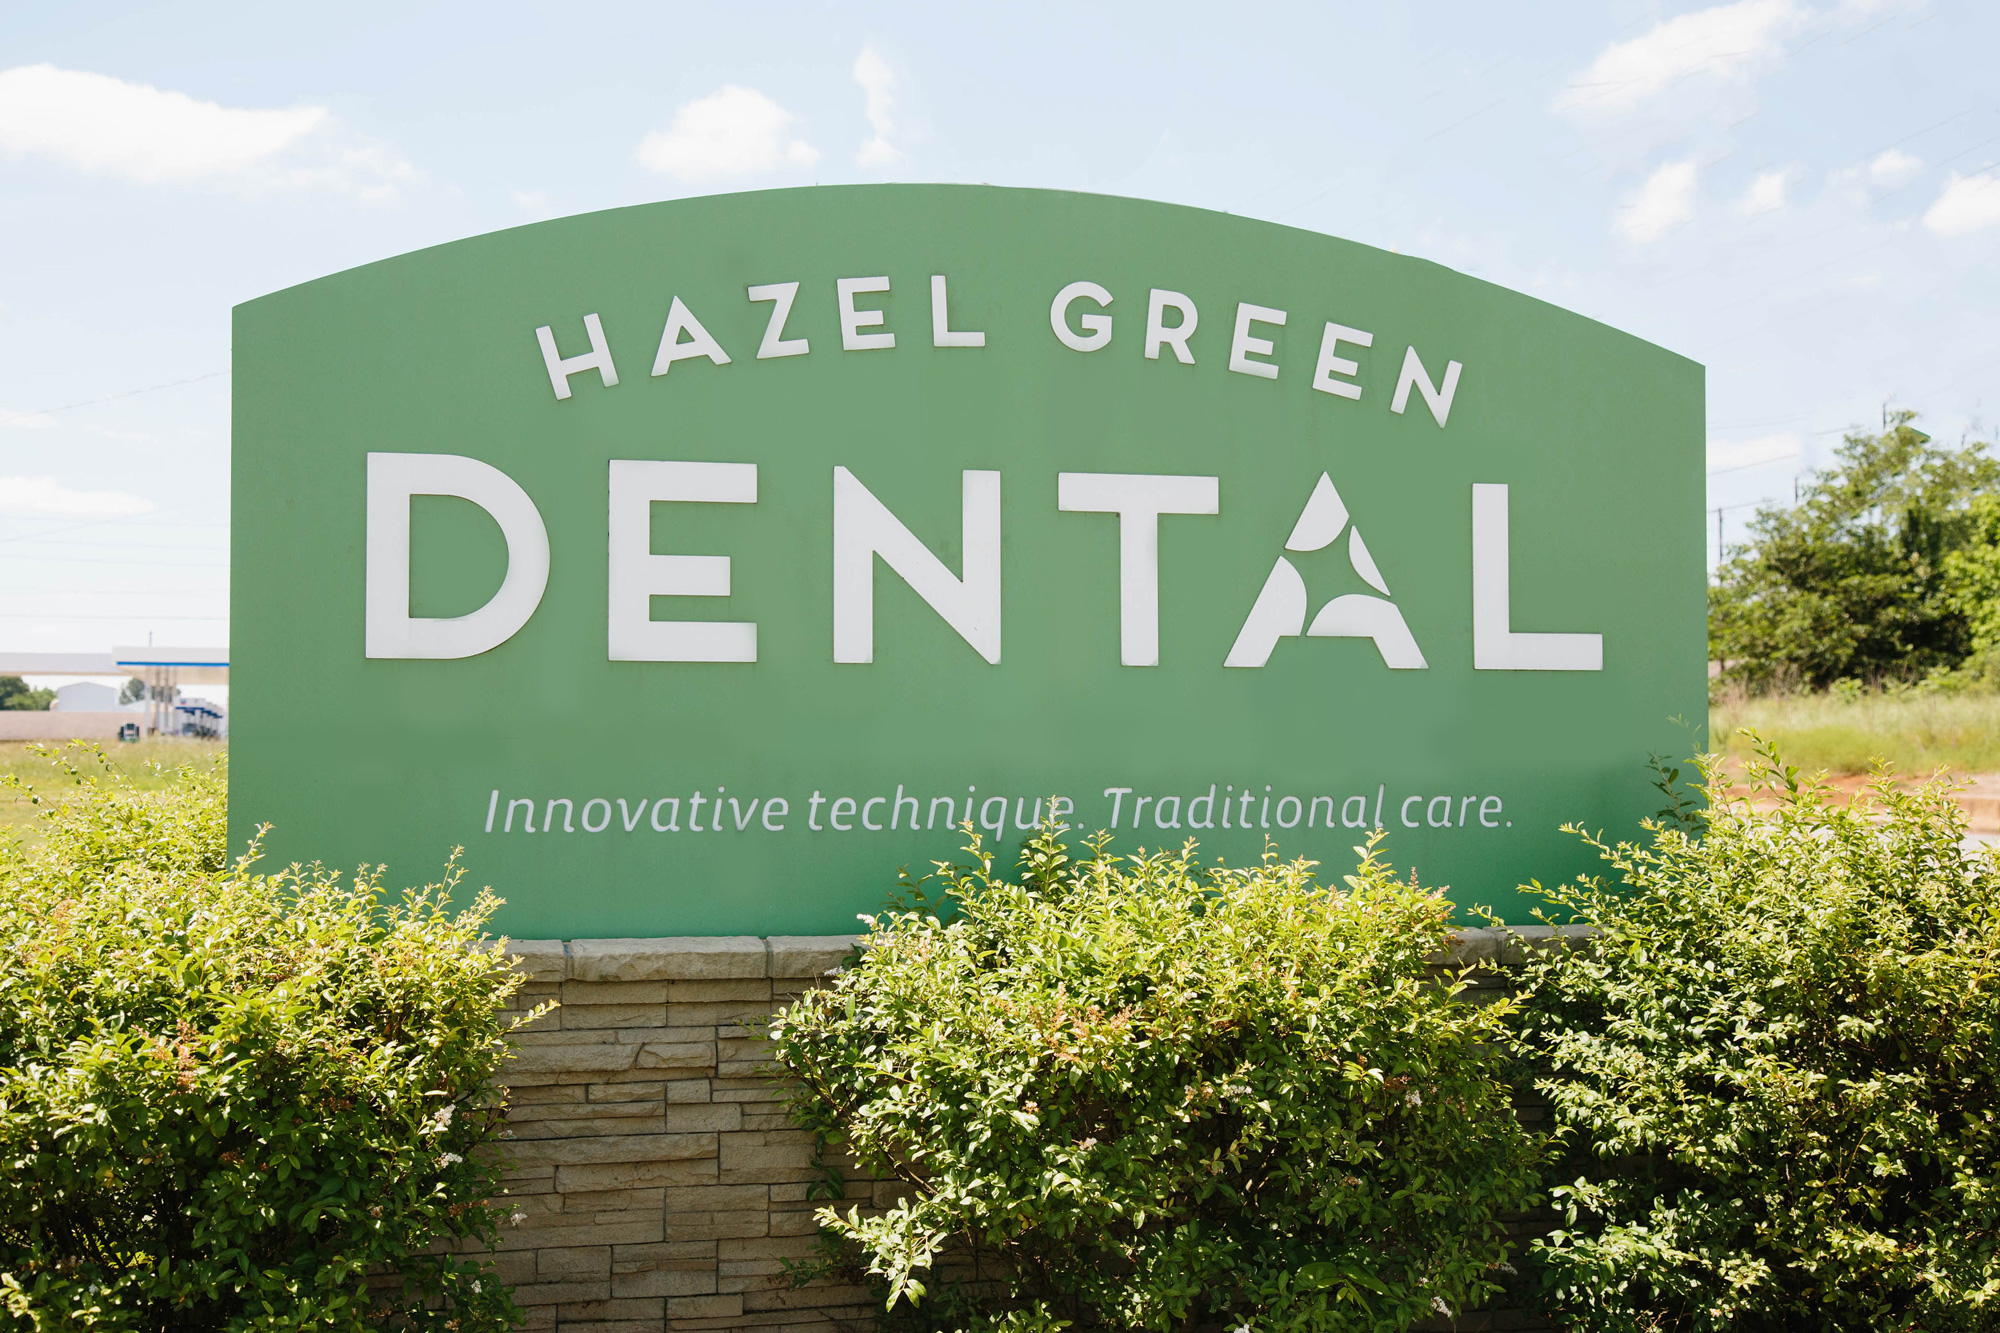 hazelgreendental-0078.jpg